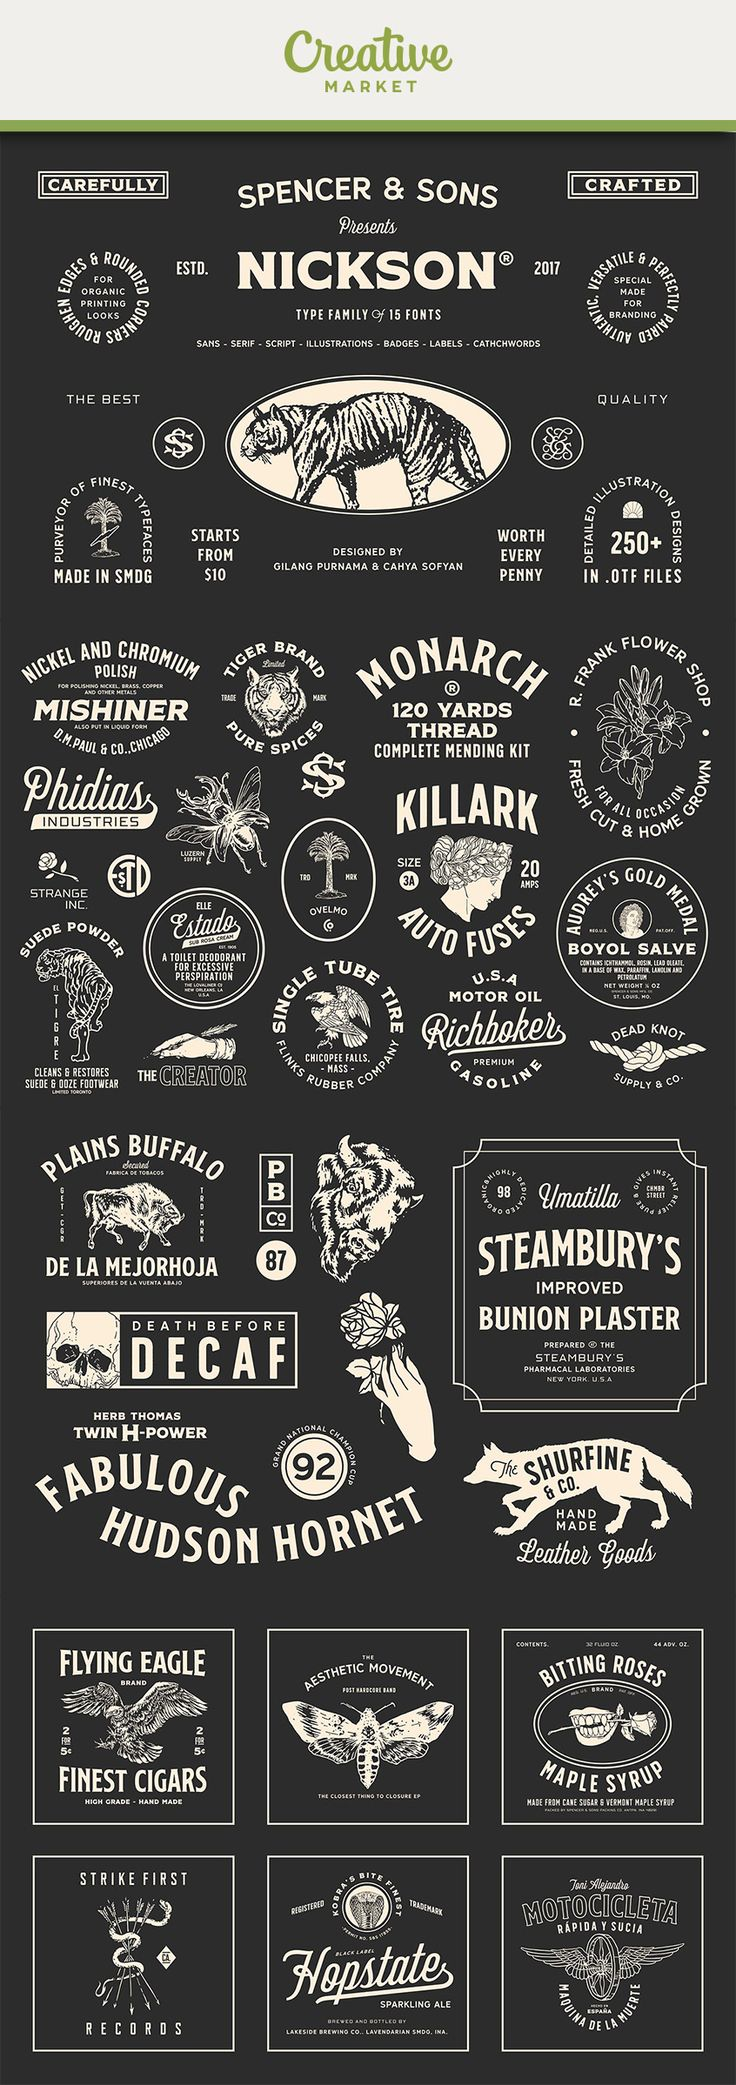 #affiliate Nickson offers seven display fonts, one script font, 250+ illustrations (using new techniques so you will not lose every detail), badges, labels, and catchwords. Nickson Font Family Collection was designed carefully to create elegant typographic works. It would be a perfect choice to design posters, affiches, logos, t-shirt and magazine prints, eye-pleasing typographic designs and more.